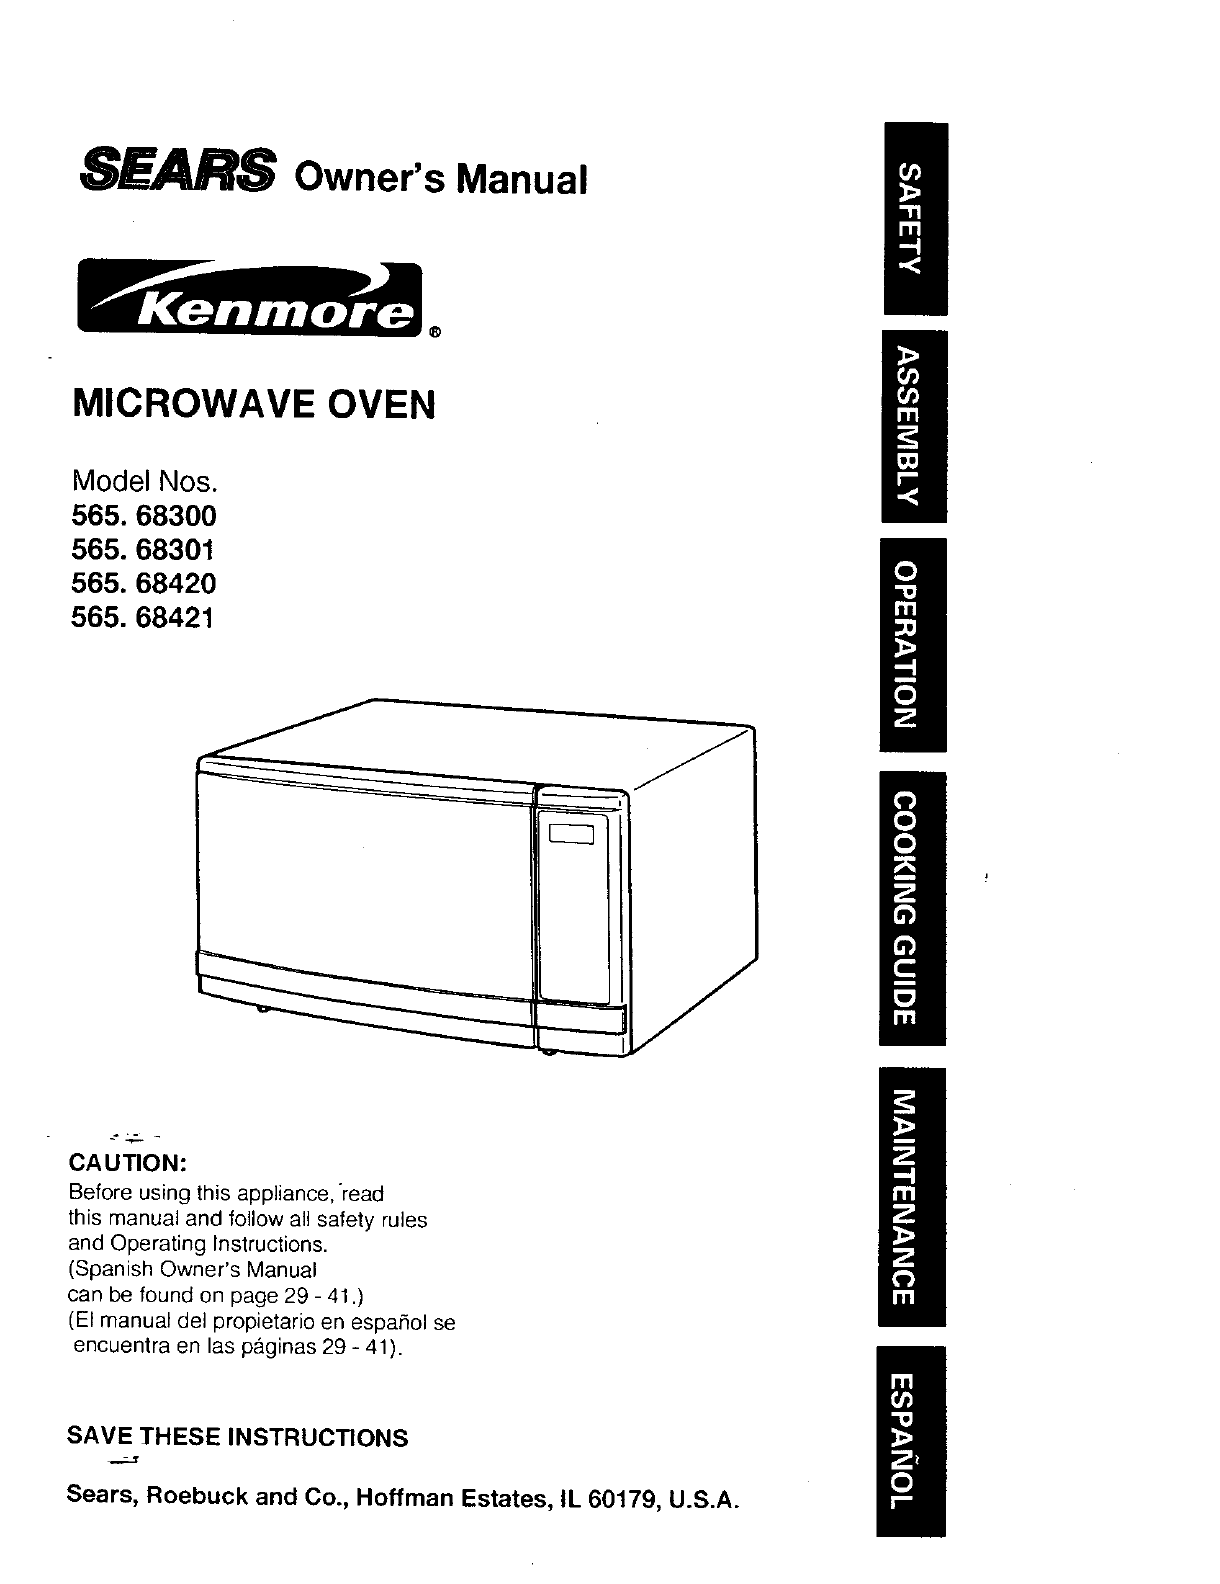 kenmore microwave oven 565 68301 user guide manualsonline com rh kitchen manualsonline com kenmore elite microwave owner's manual kenmore microwave hood combination owners manual